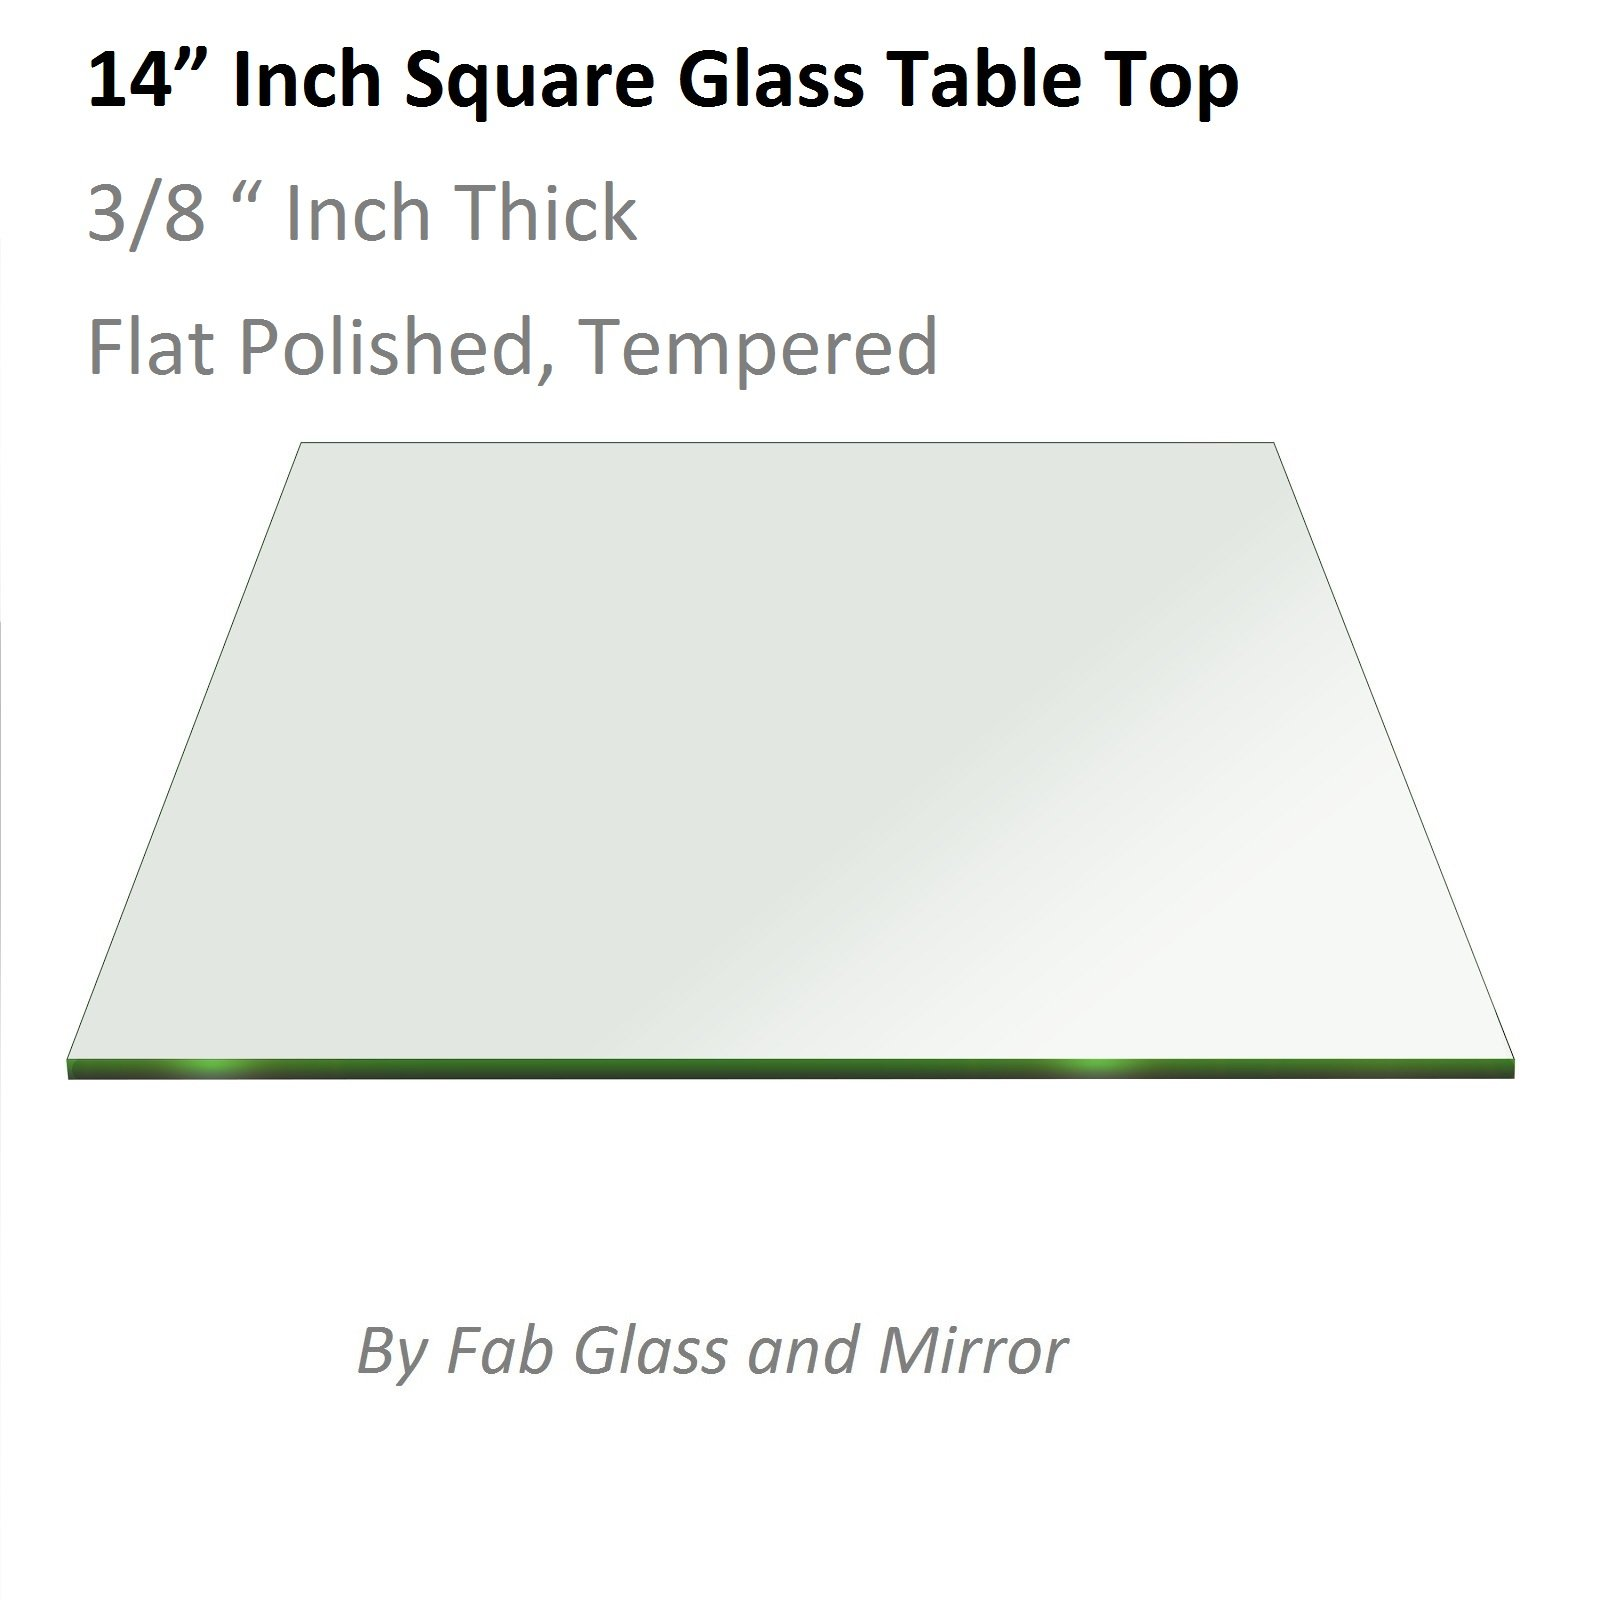 Fab Glass and Mirror TSQ-1410FLTE 14'' Inch Square 3/8'' Thick Flat Polished Tempered Radius Corners Glass Table Top, 14'', Clear by Fab Glass and Mirror